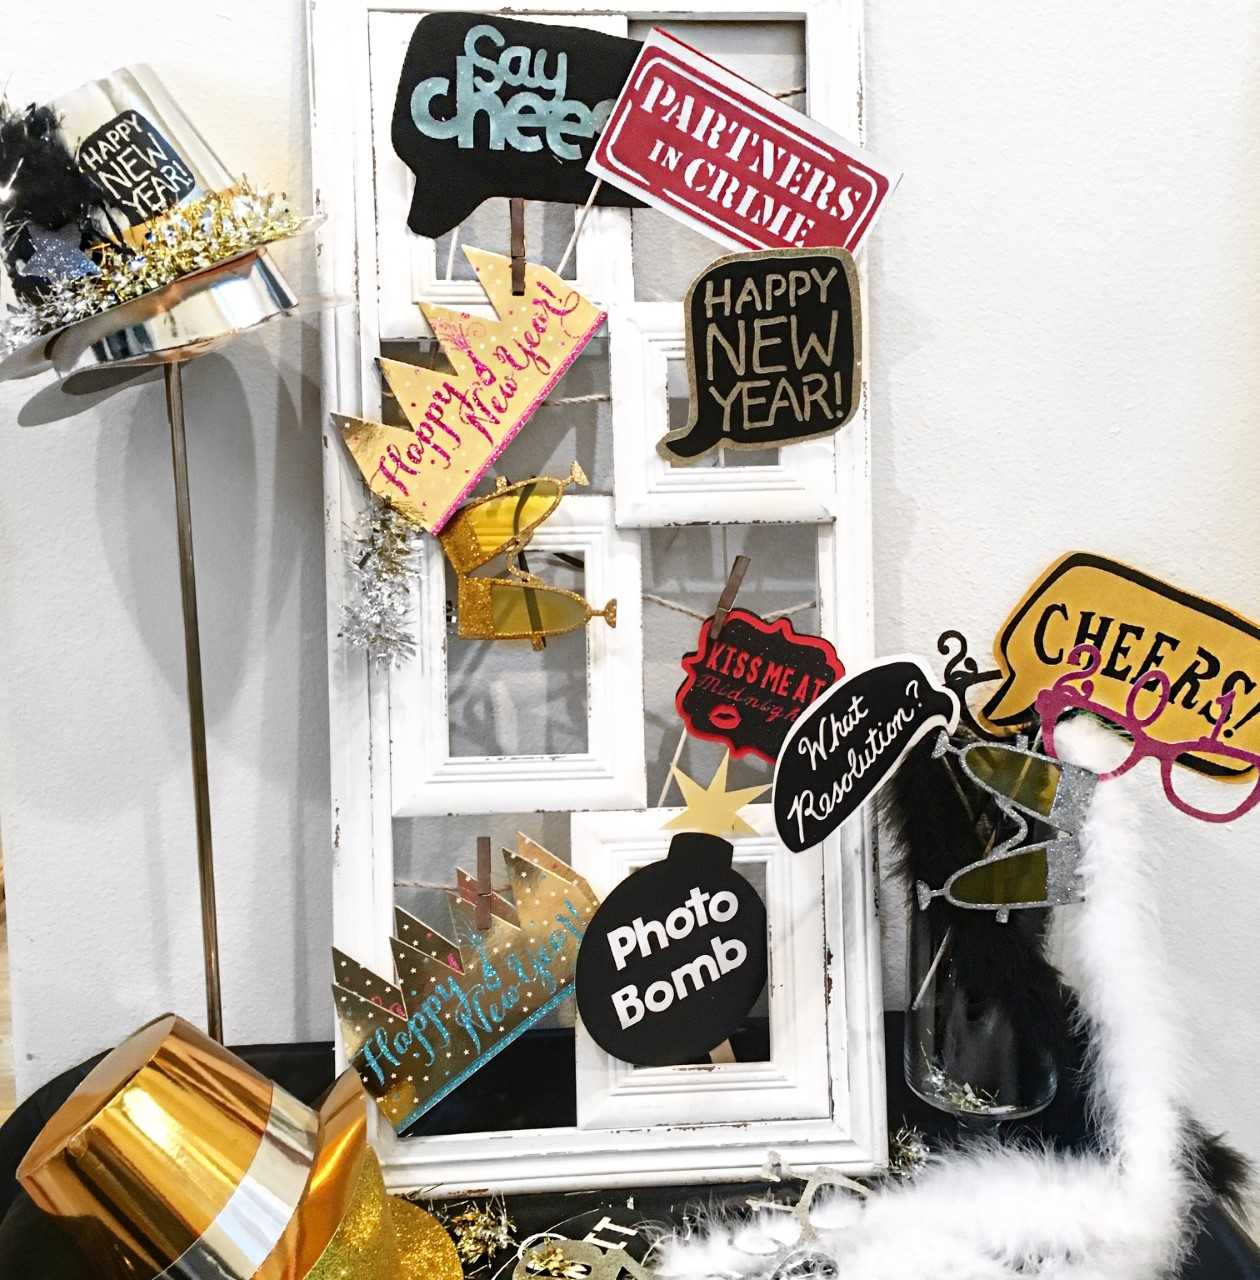 Pop,Fizz and Clink-Happy New Year-New Year eve party-New Year Toast Table-Champagne Toast-New Years Eve Party-Black white and Gold New Year eve party-New Year Drink Ideas-Photo Props-New Year Photo Props-www.SugarPartiesLA.com